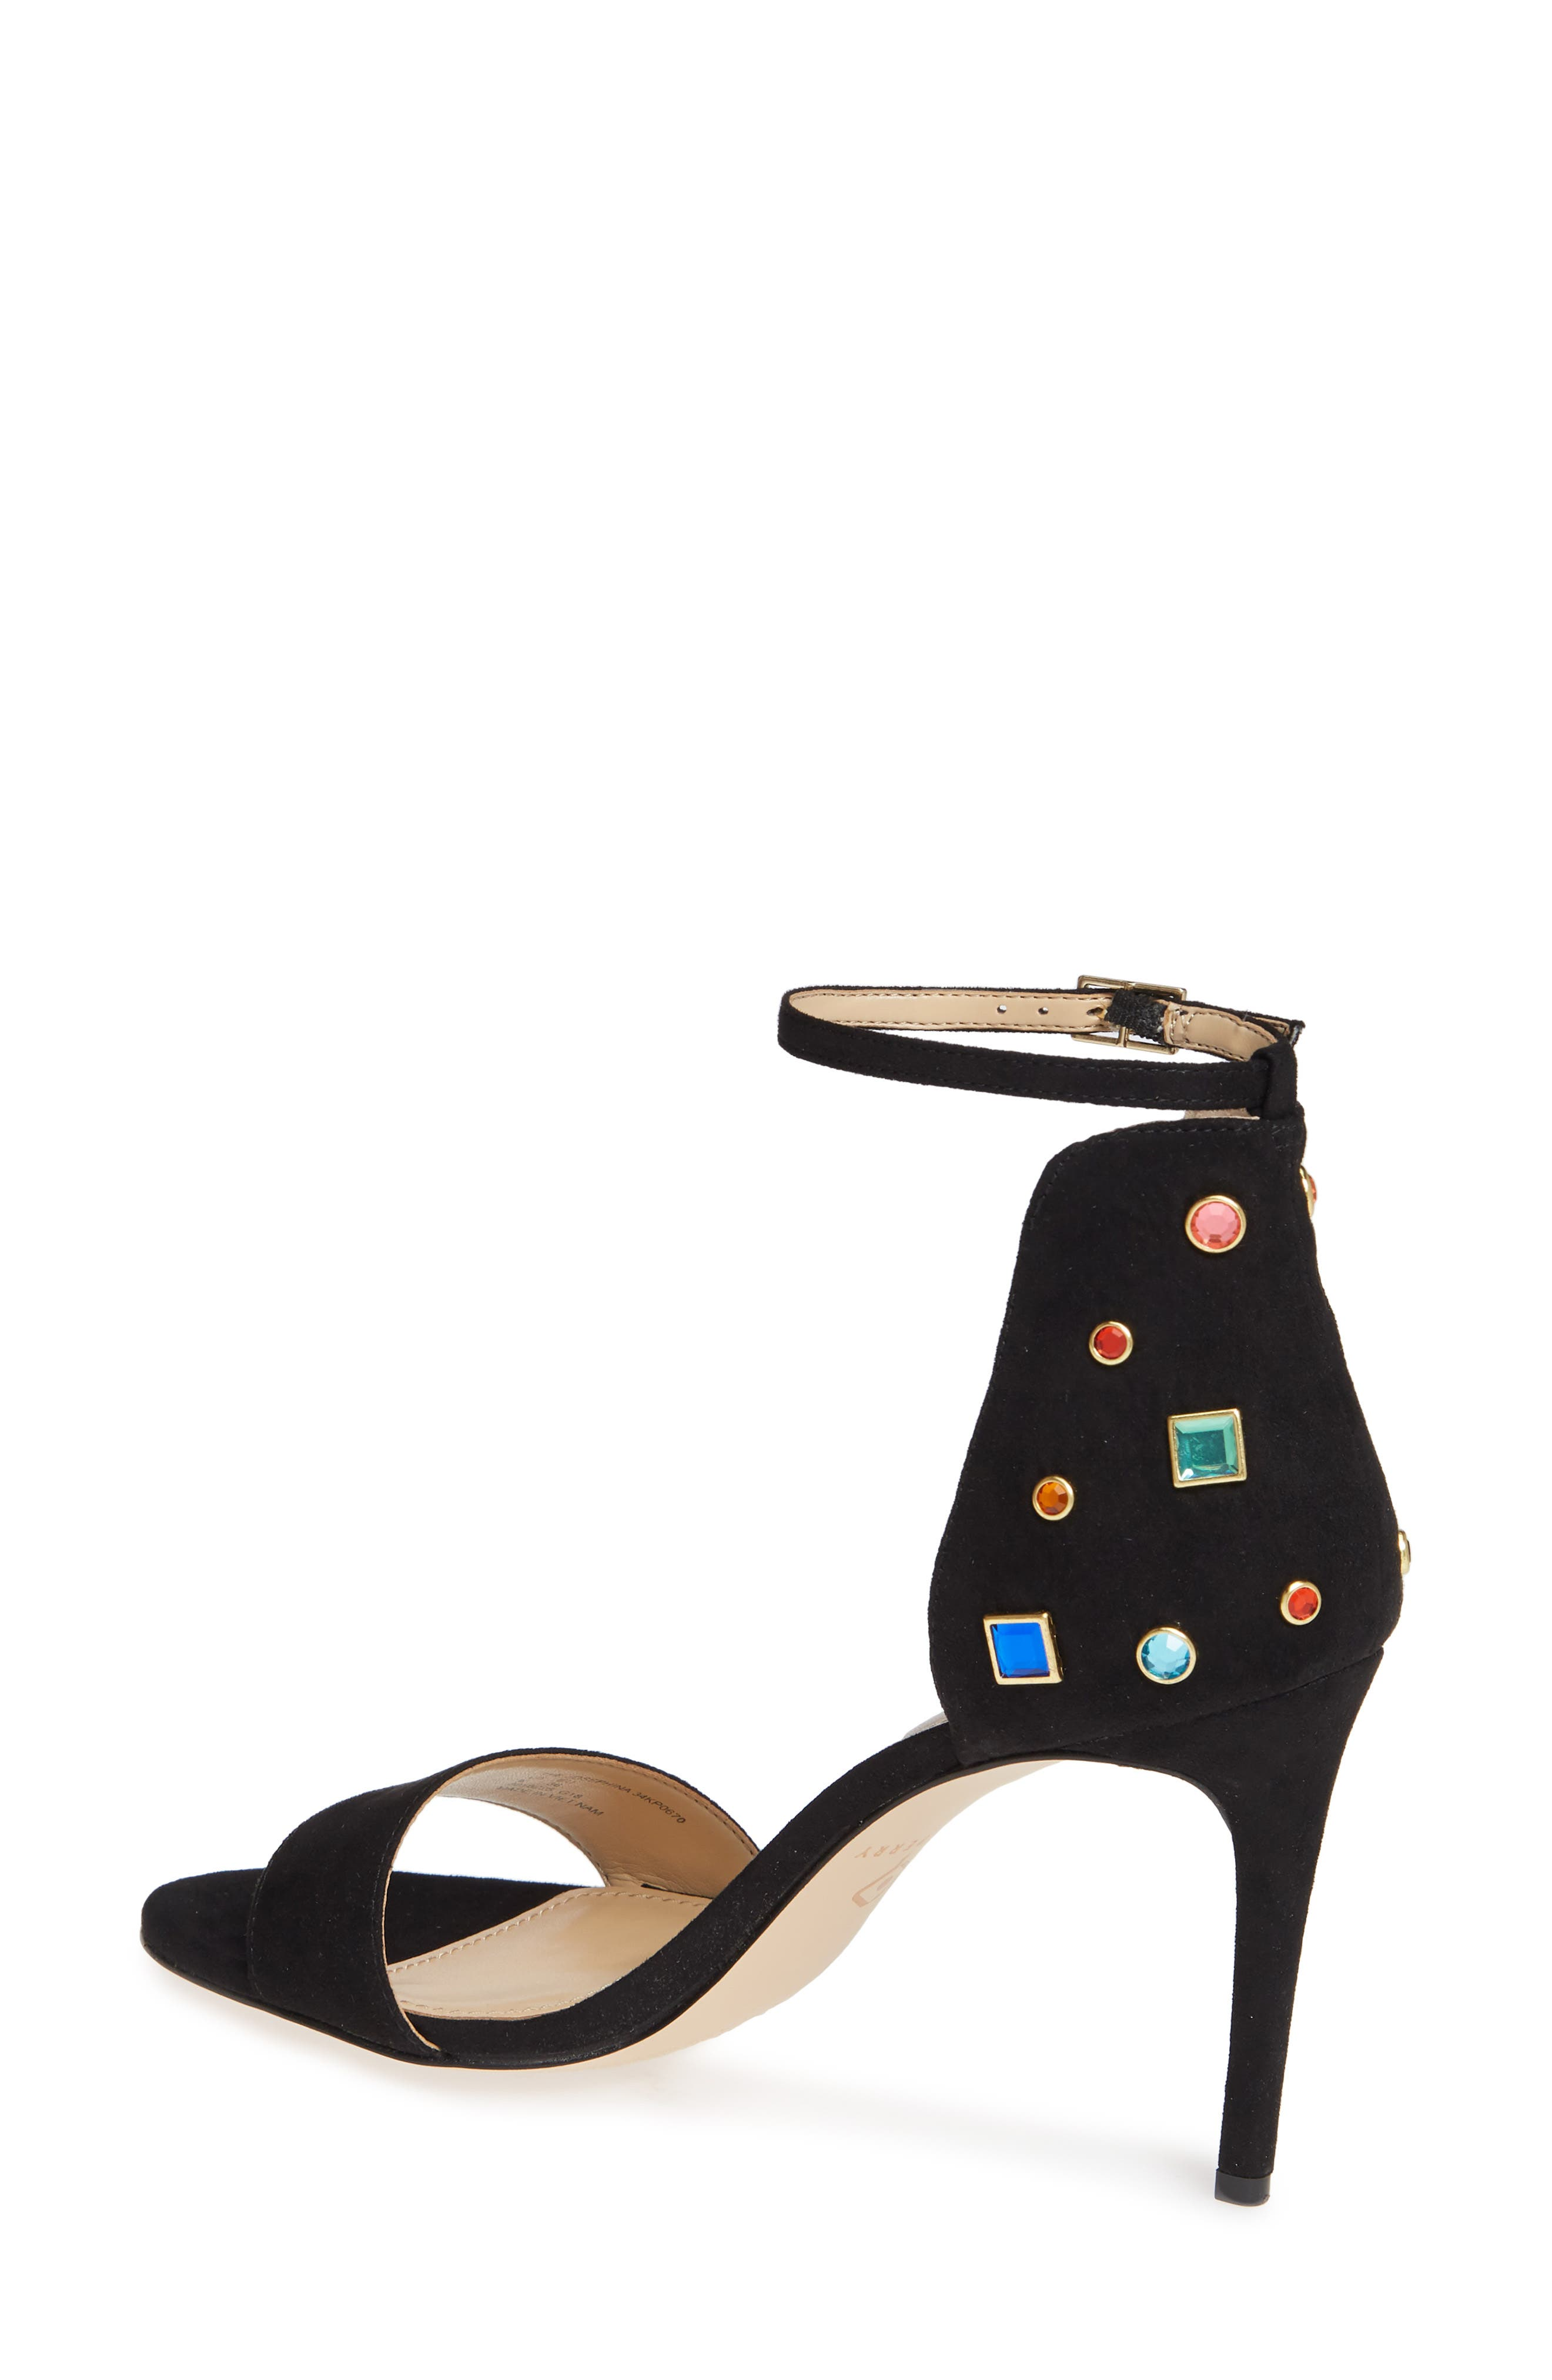 KATY PERRY, Jewel Ankle Strap Sandal, Alternate thumbnail 2, color, 001